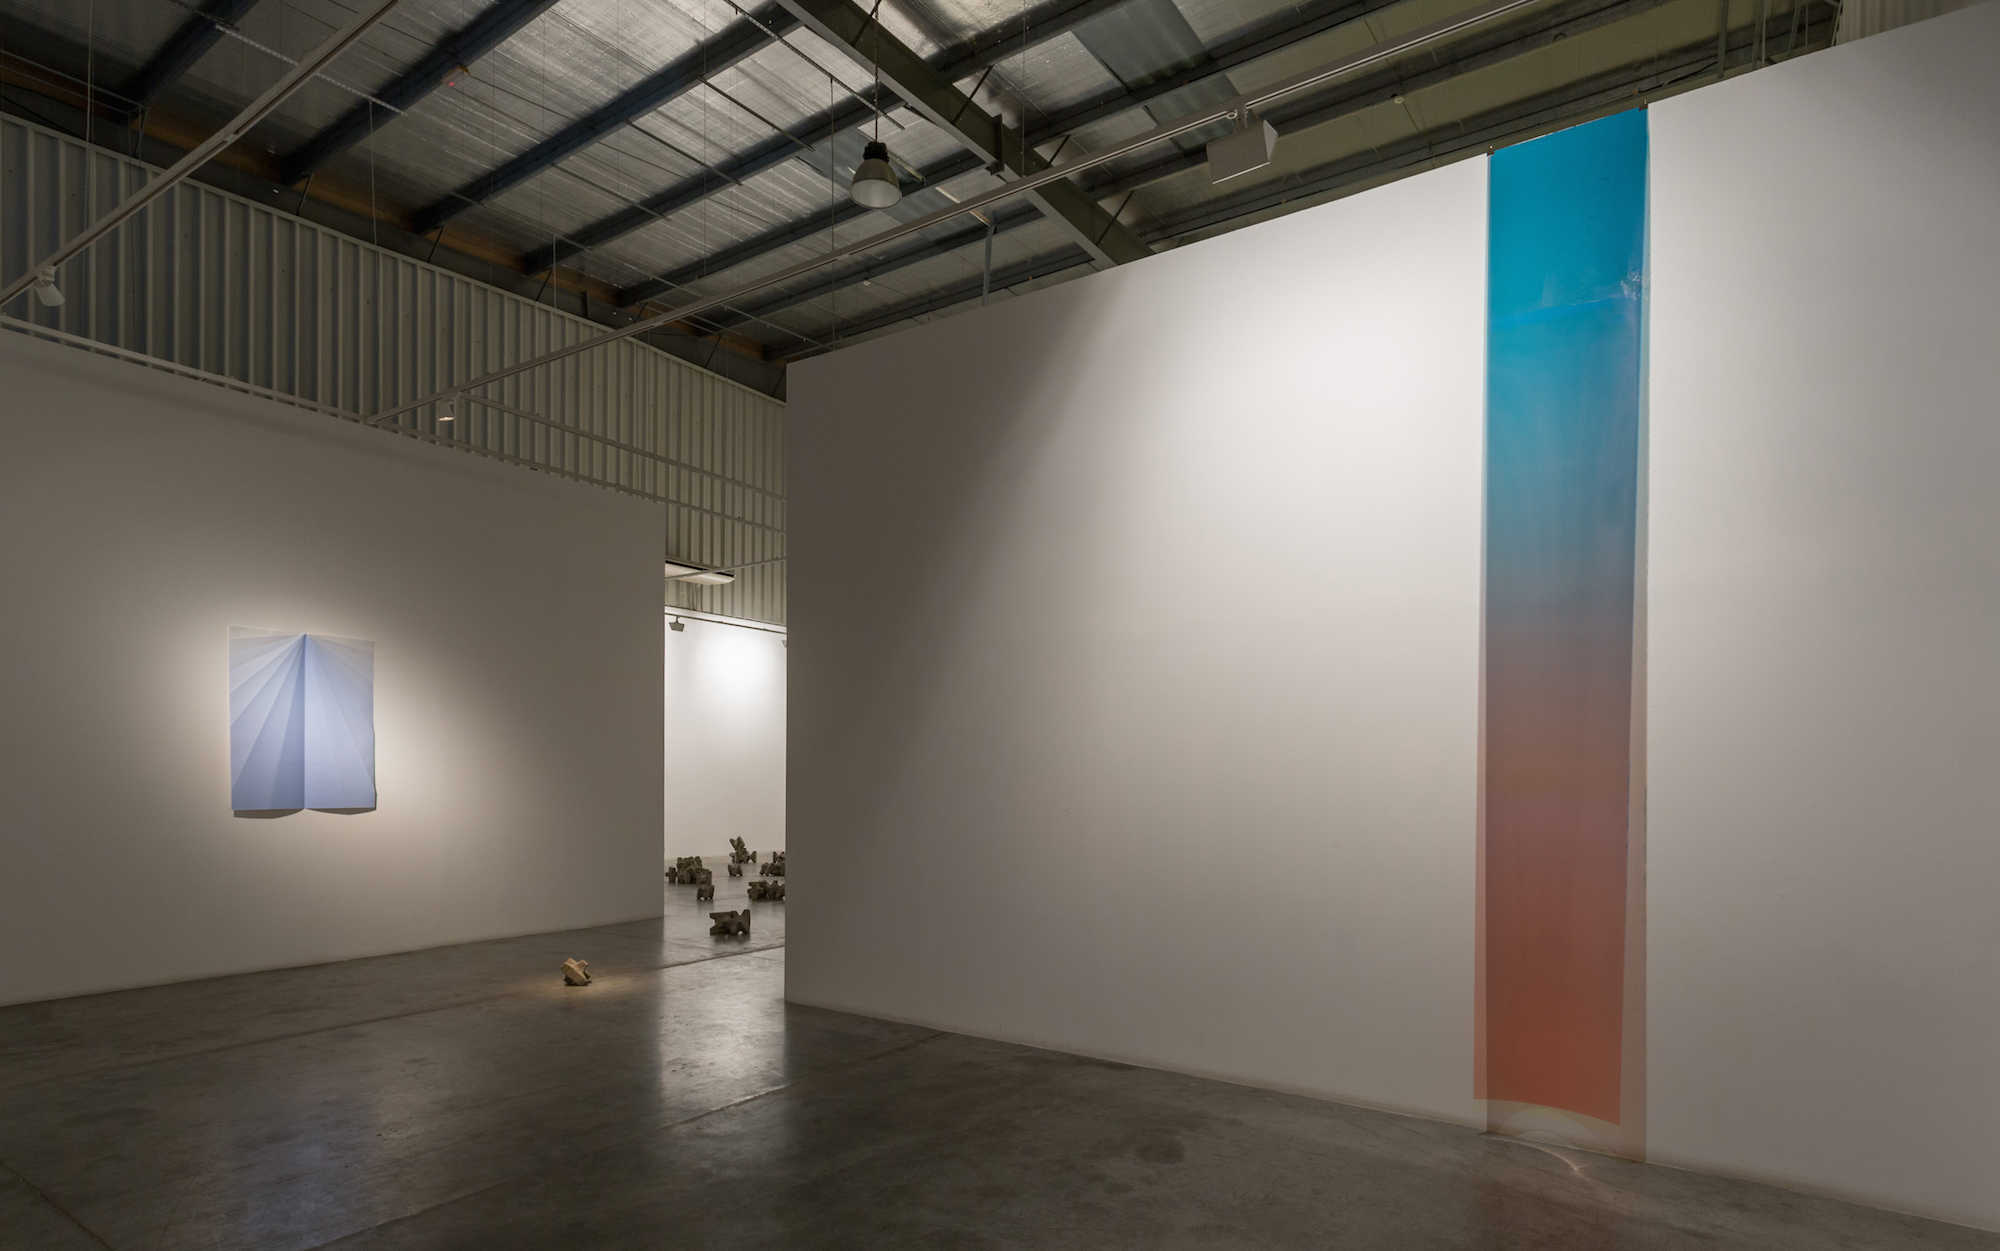 LEFT - RIGHT  LEFT:  Blue Paperplane, 2015, inkjet on folded paper, 146 x 105 cm  CENTER: Rhythm Breakers, 2015, concrete, dimensions variable  RIGHT: Processing Days and Nights 1, 2015, Unique inkjet print on Negative Permajet transfer film, dimensions variable